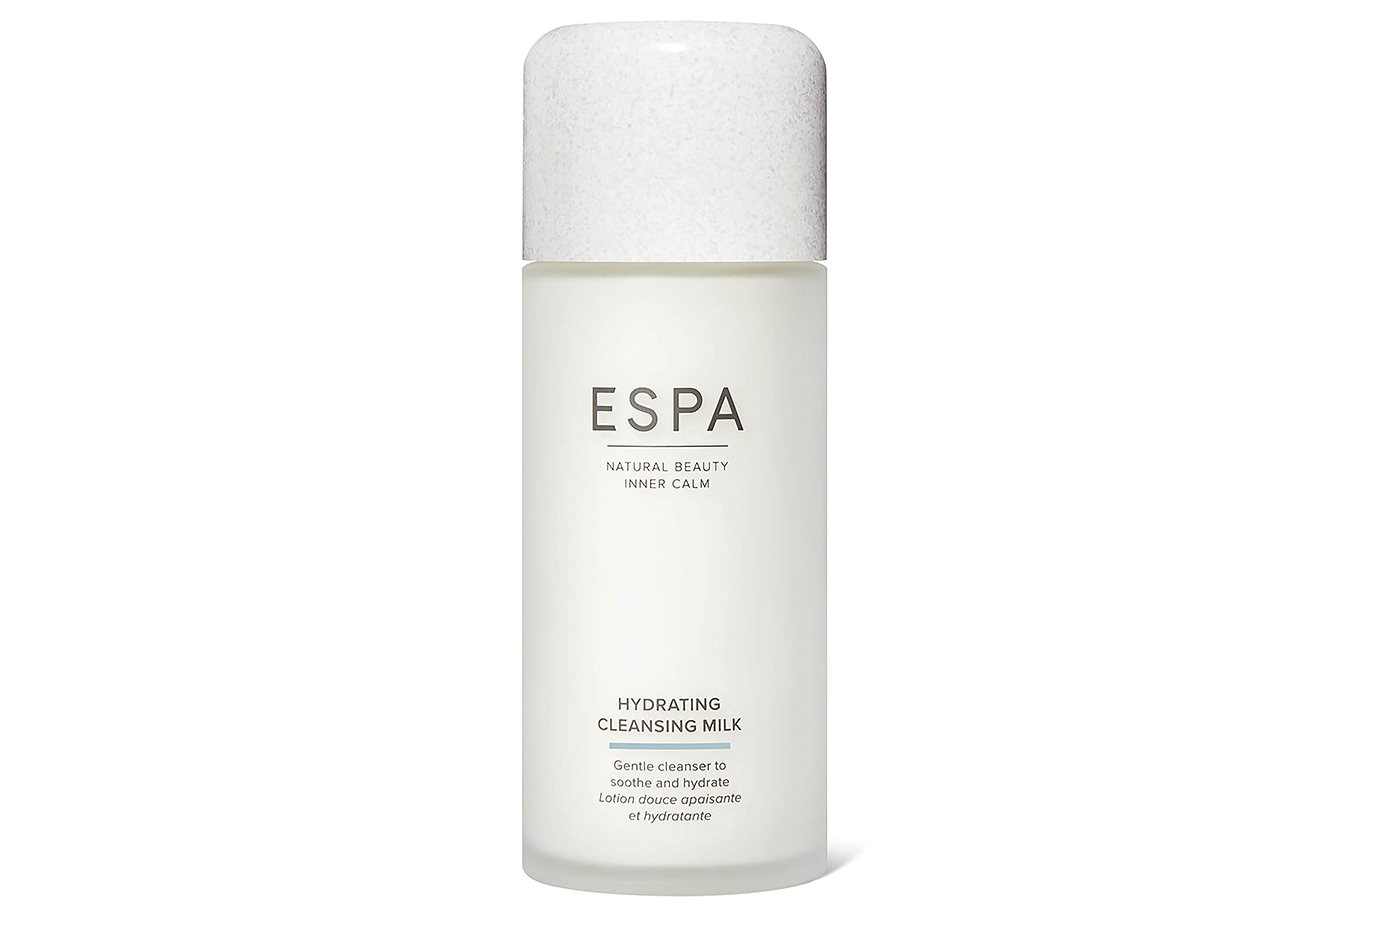 Cleanse the skin with ESPA